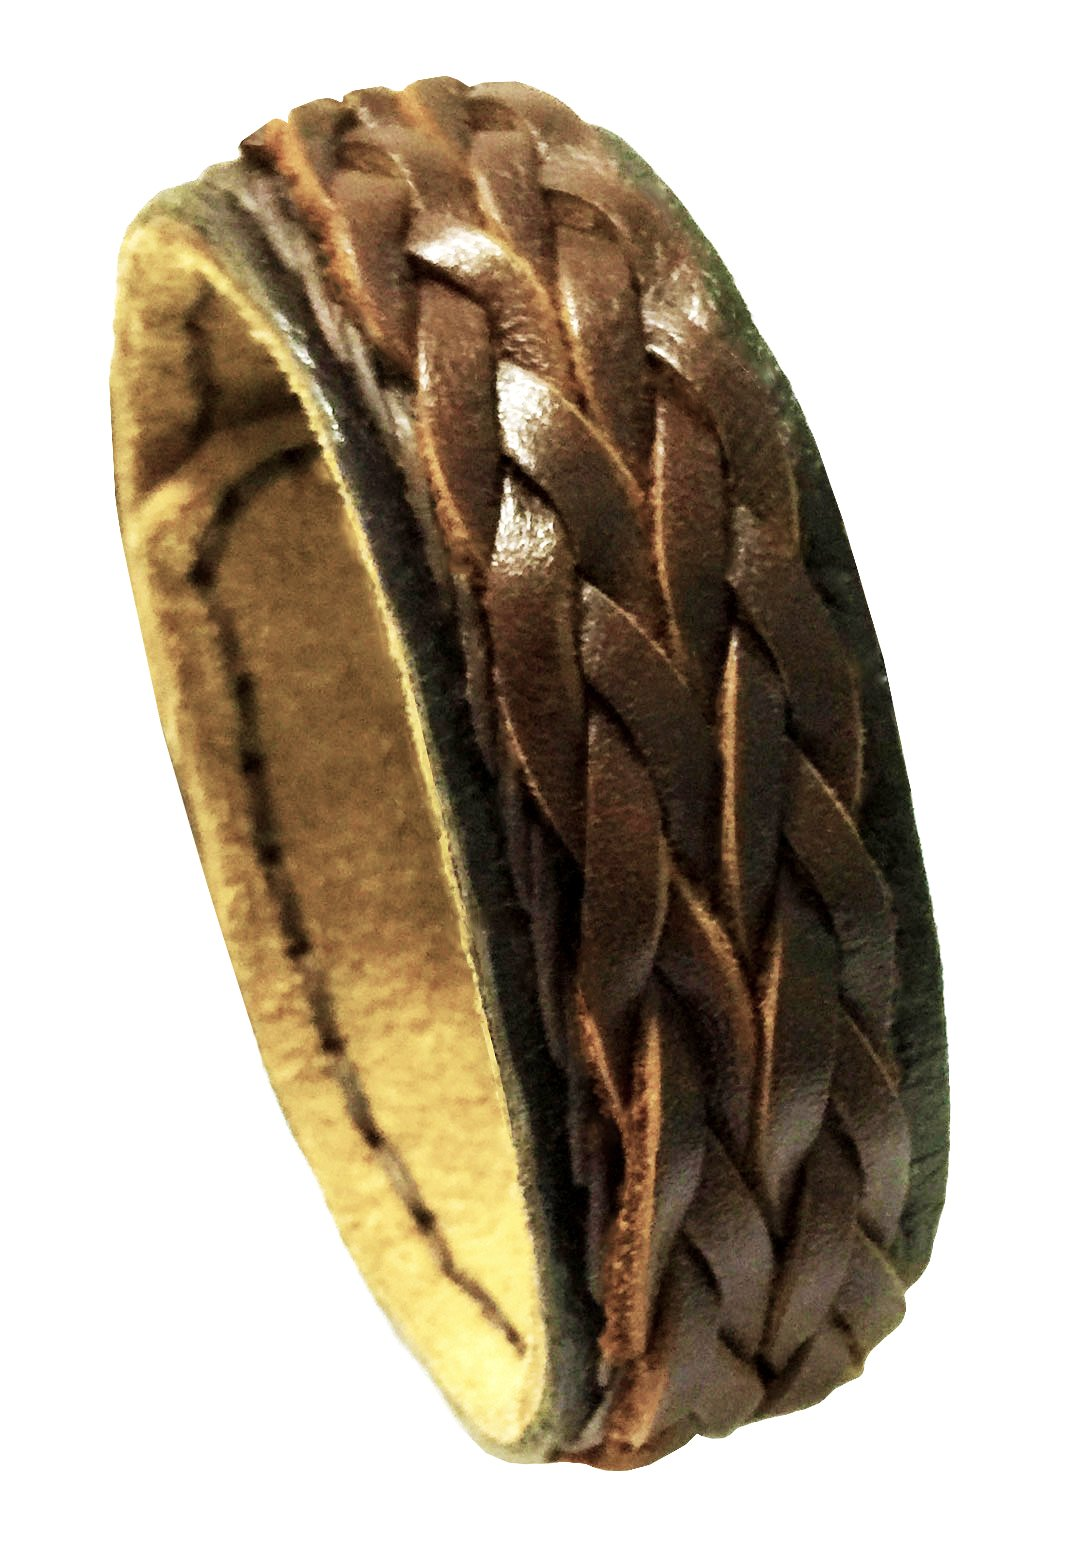 D'SHARK 1'' Wide Luxury Braided Punk Rock Biker Leather Bangle Bracelet Cuff Wristband for Unisex (Brown)